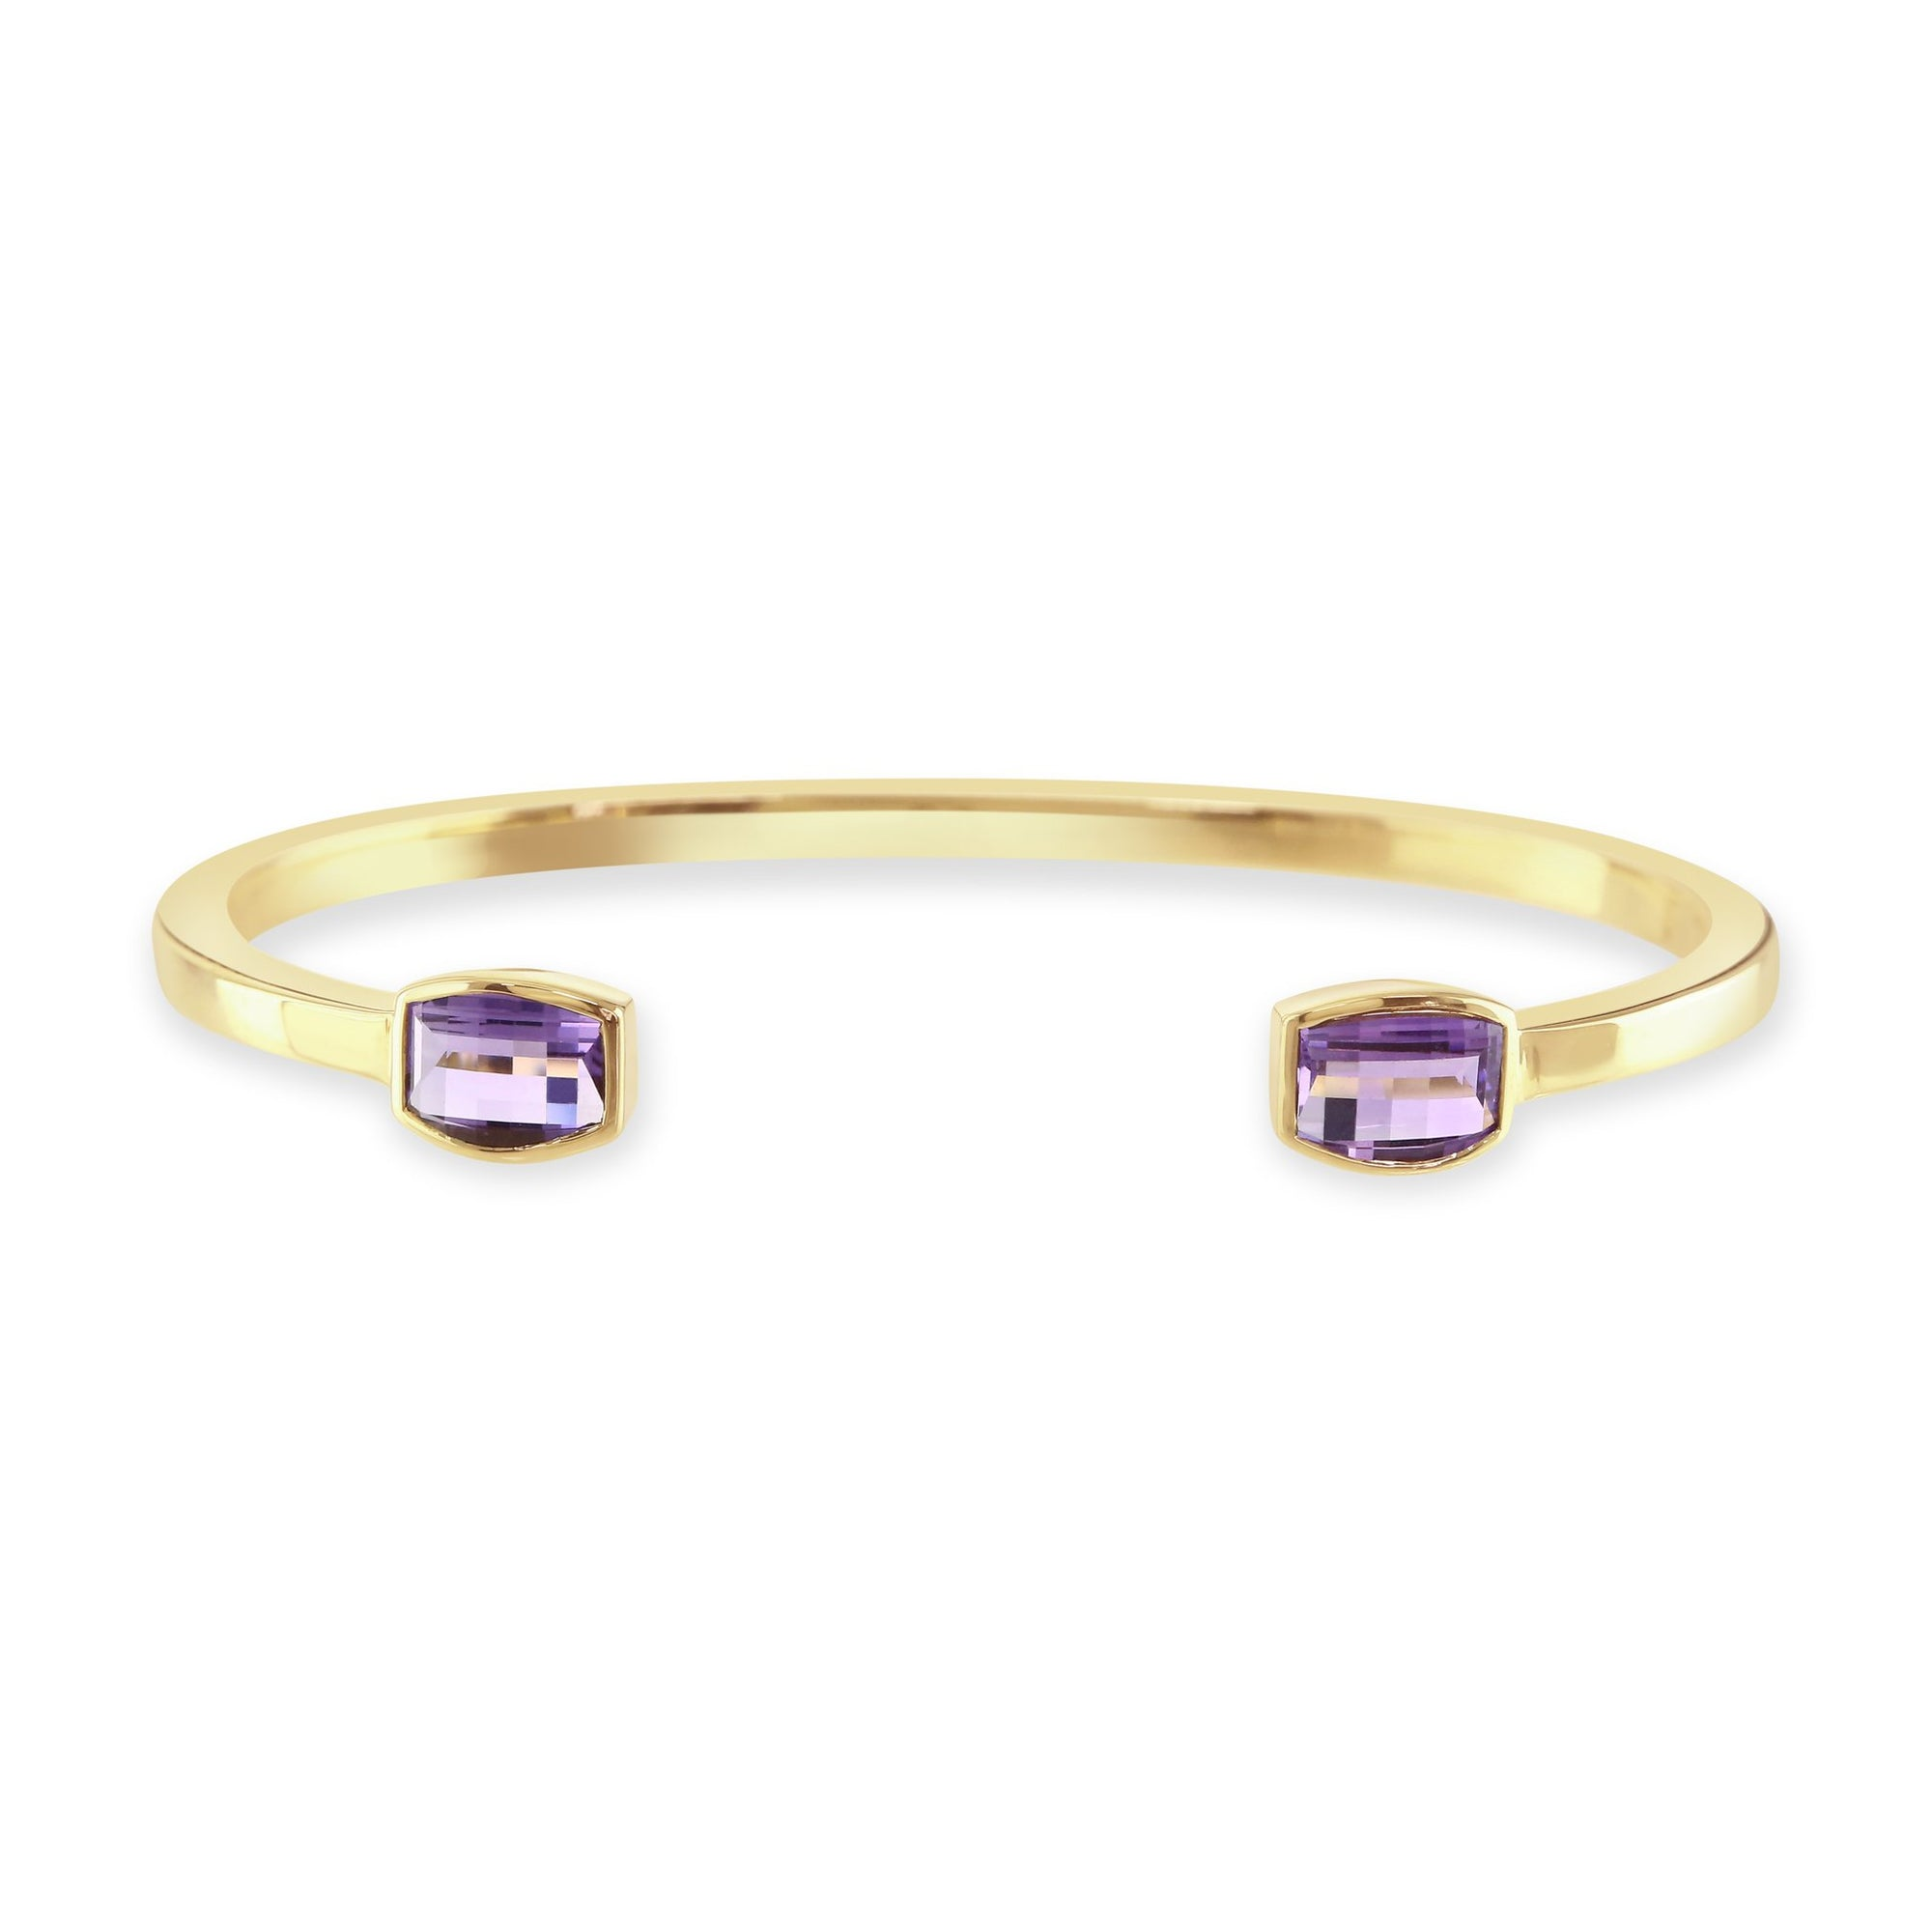 18ct Yellow Gold Amethyst Torque Bangle